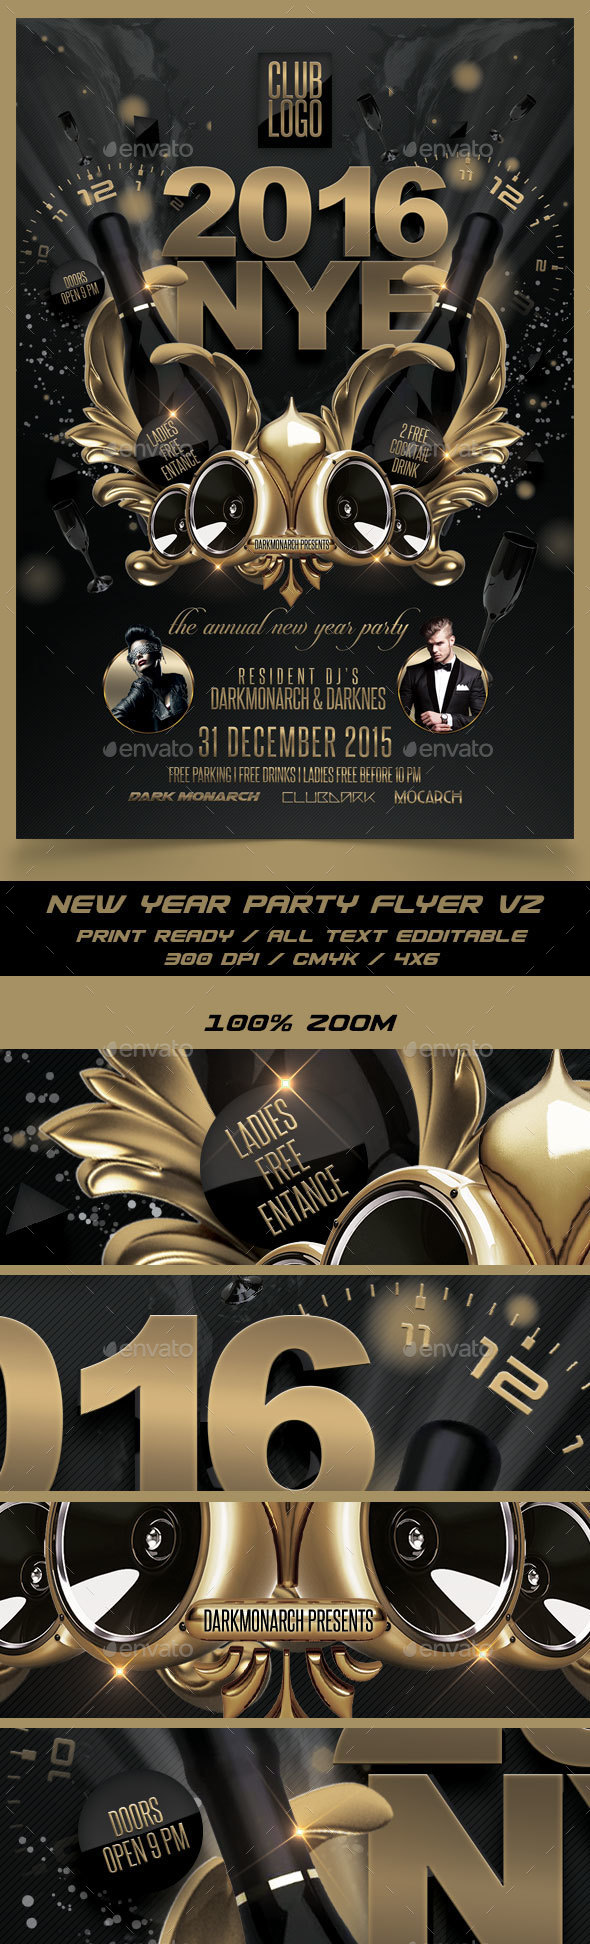 New Year Party Flyer V2 - Events Flyers